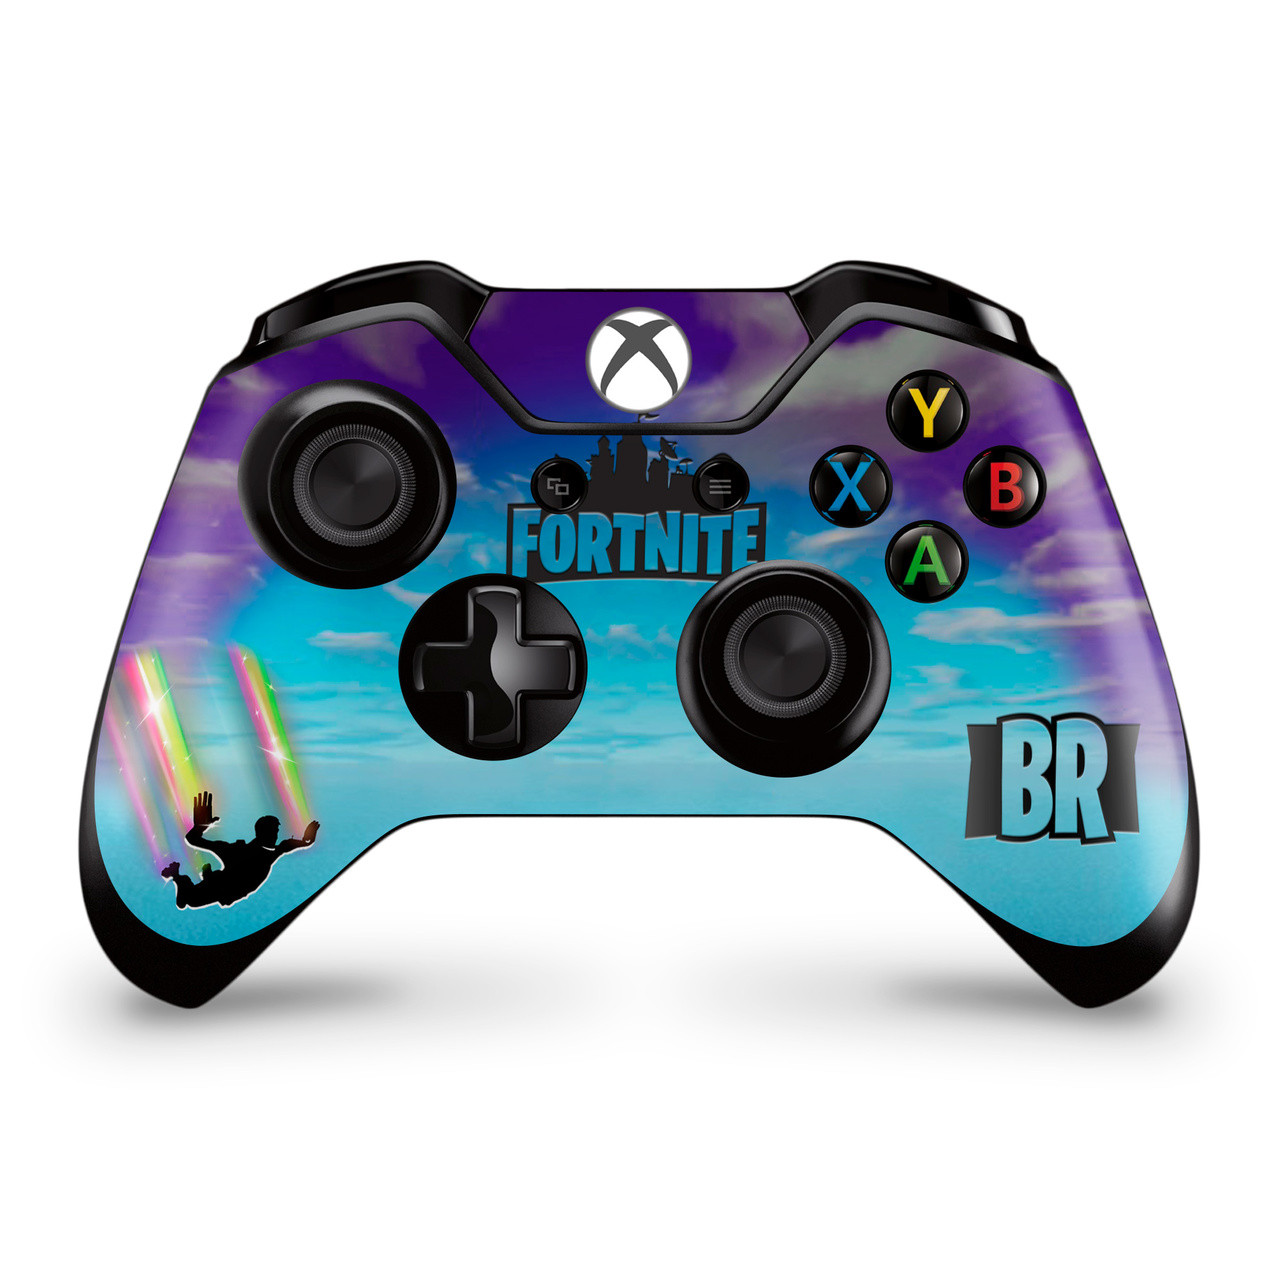 Xbox Elite Controller Fortnite Keybinds on